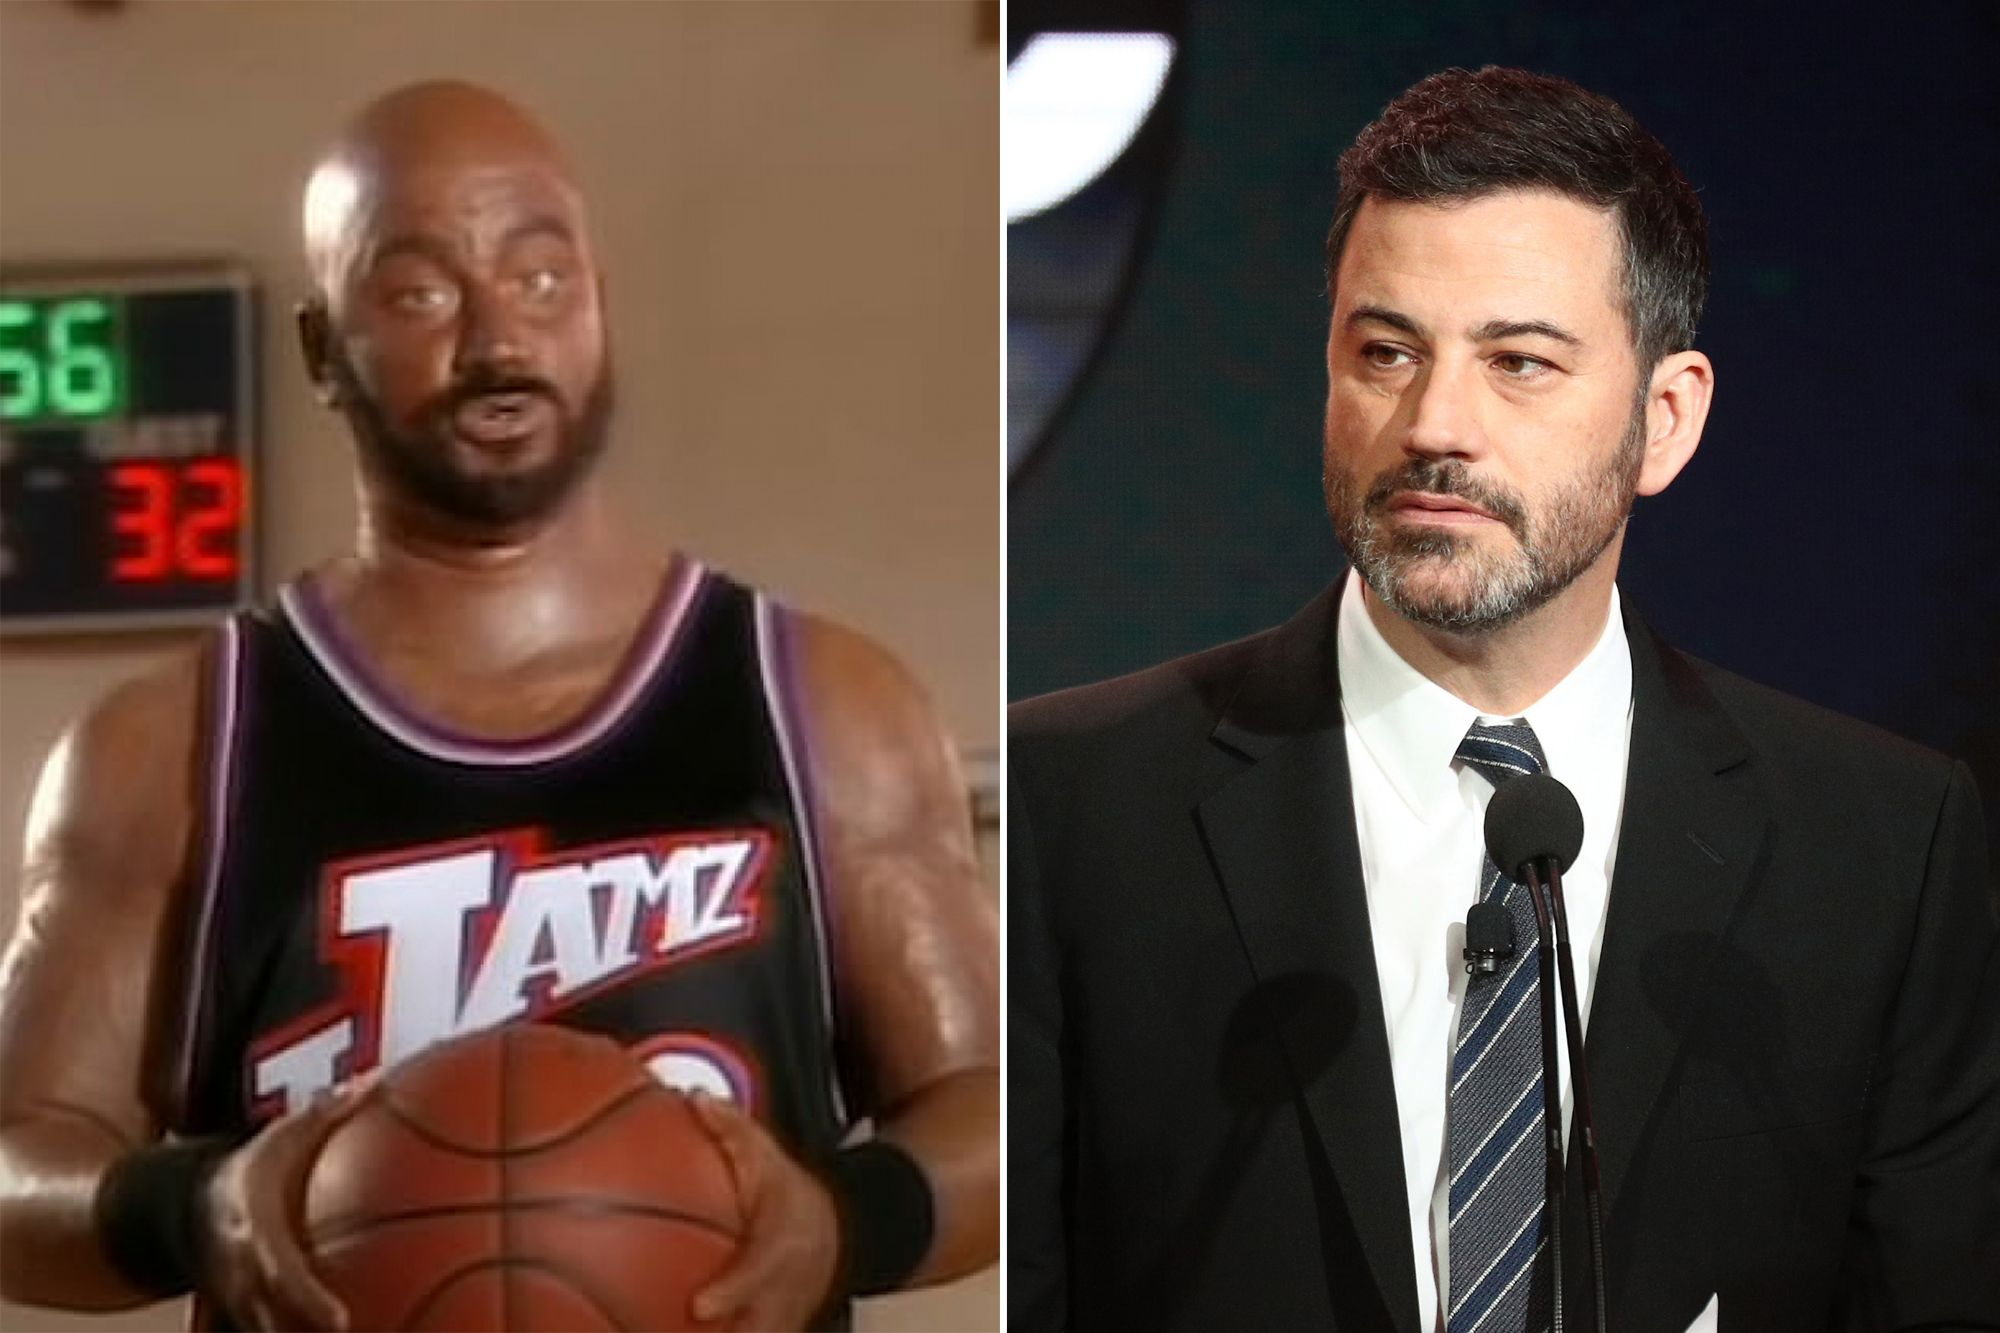 jimmy-kimmel-apologizes-for-his-embarrassing-impersonations-of-black-celebs-from-over-20-years-ago-read-the-lengthy-statement